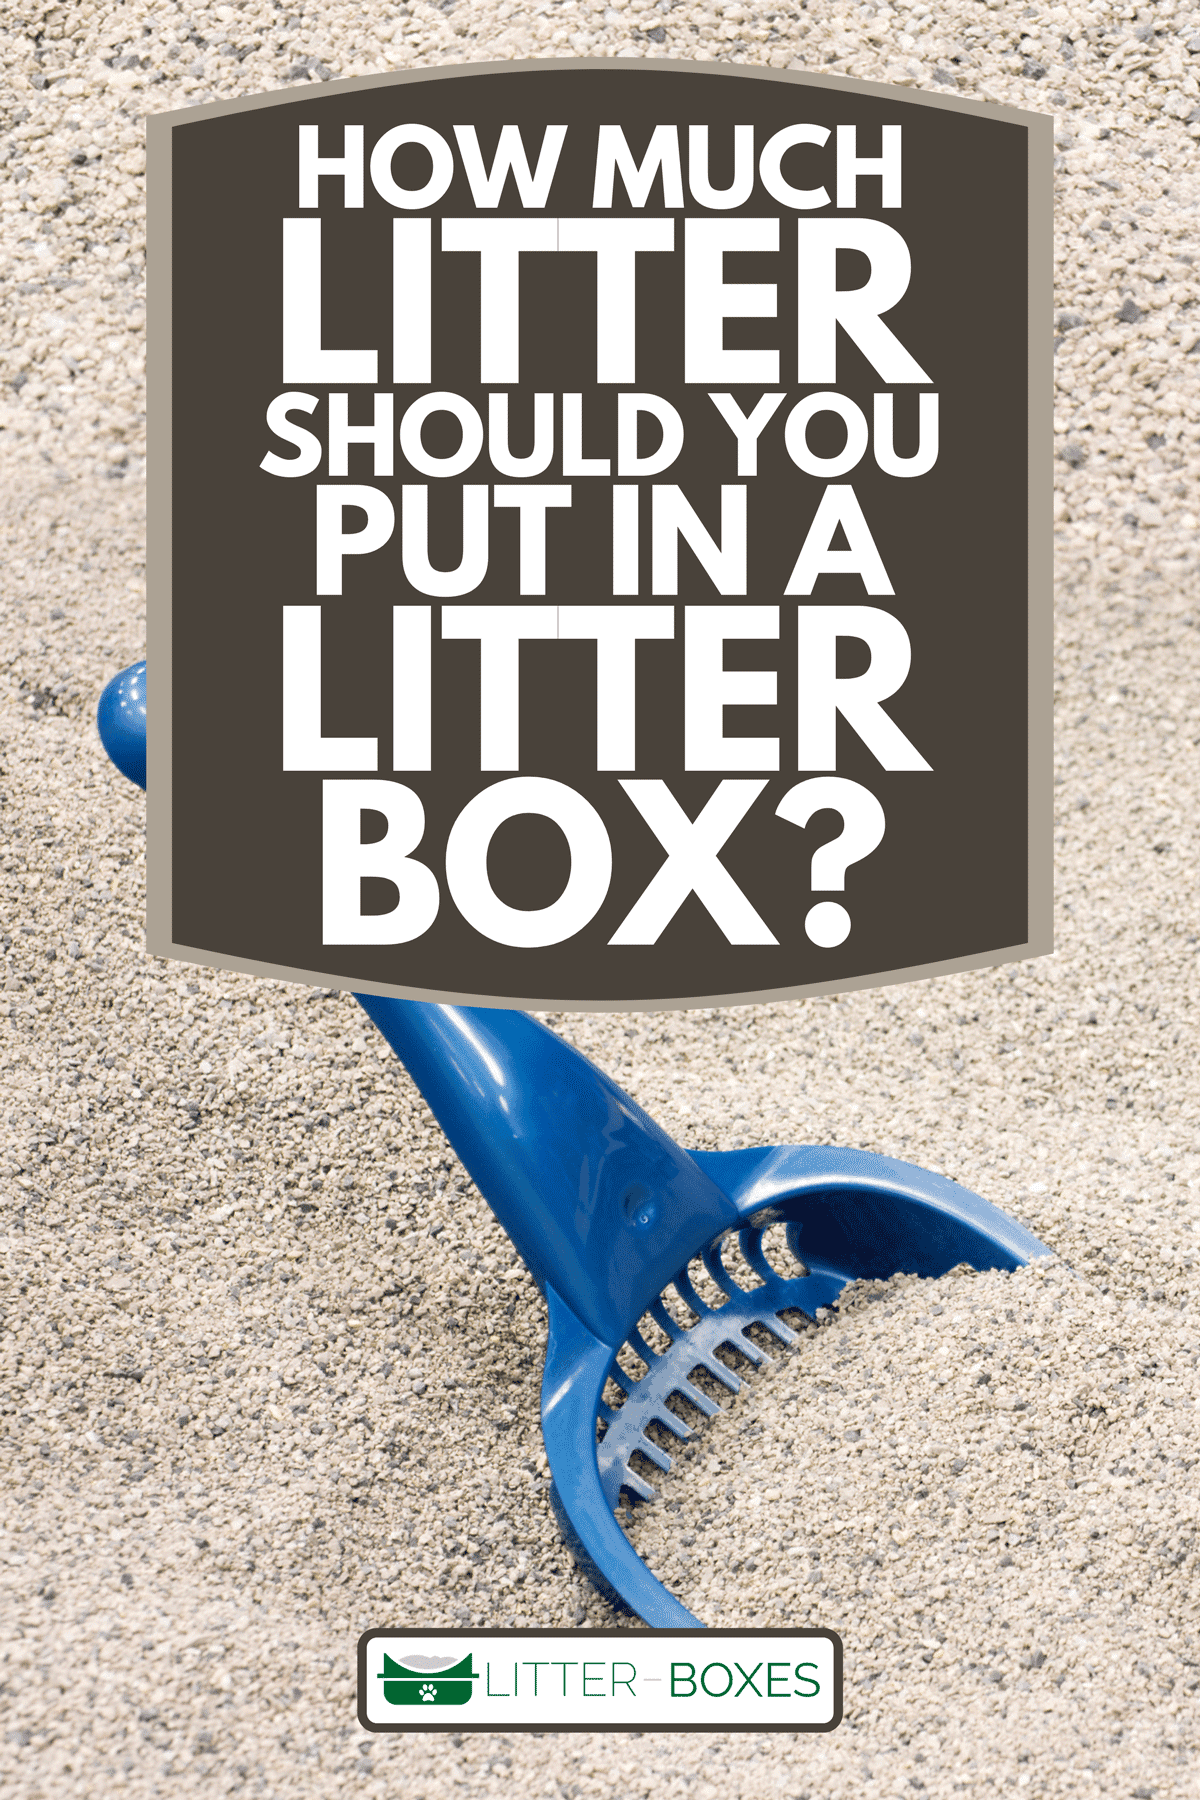 A blue scoop sits in a box of clean cat litter, How Much Litter Should You Put In A Litter Box?